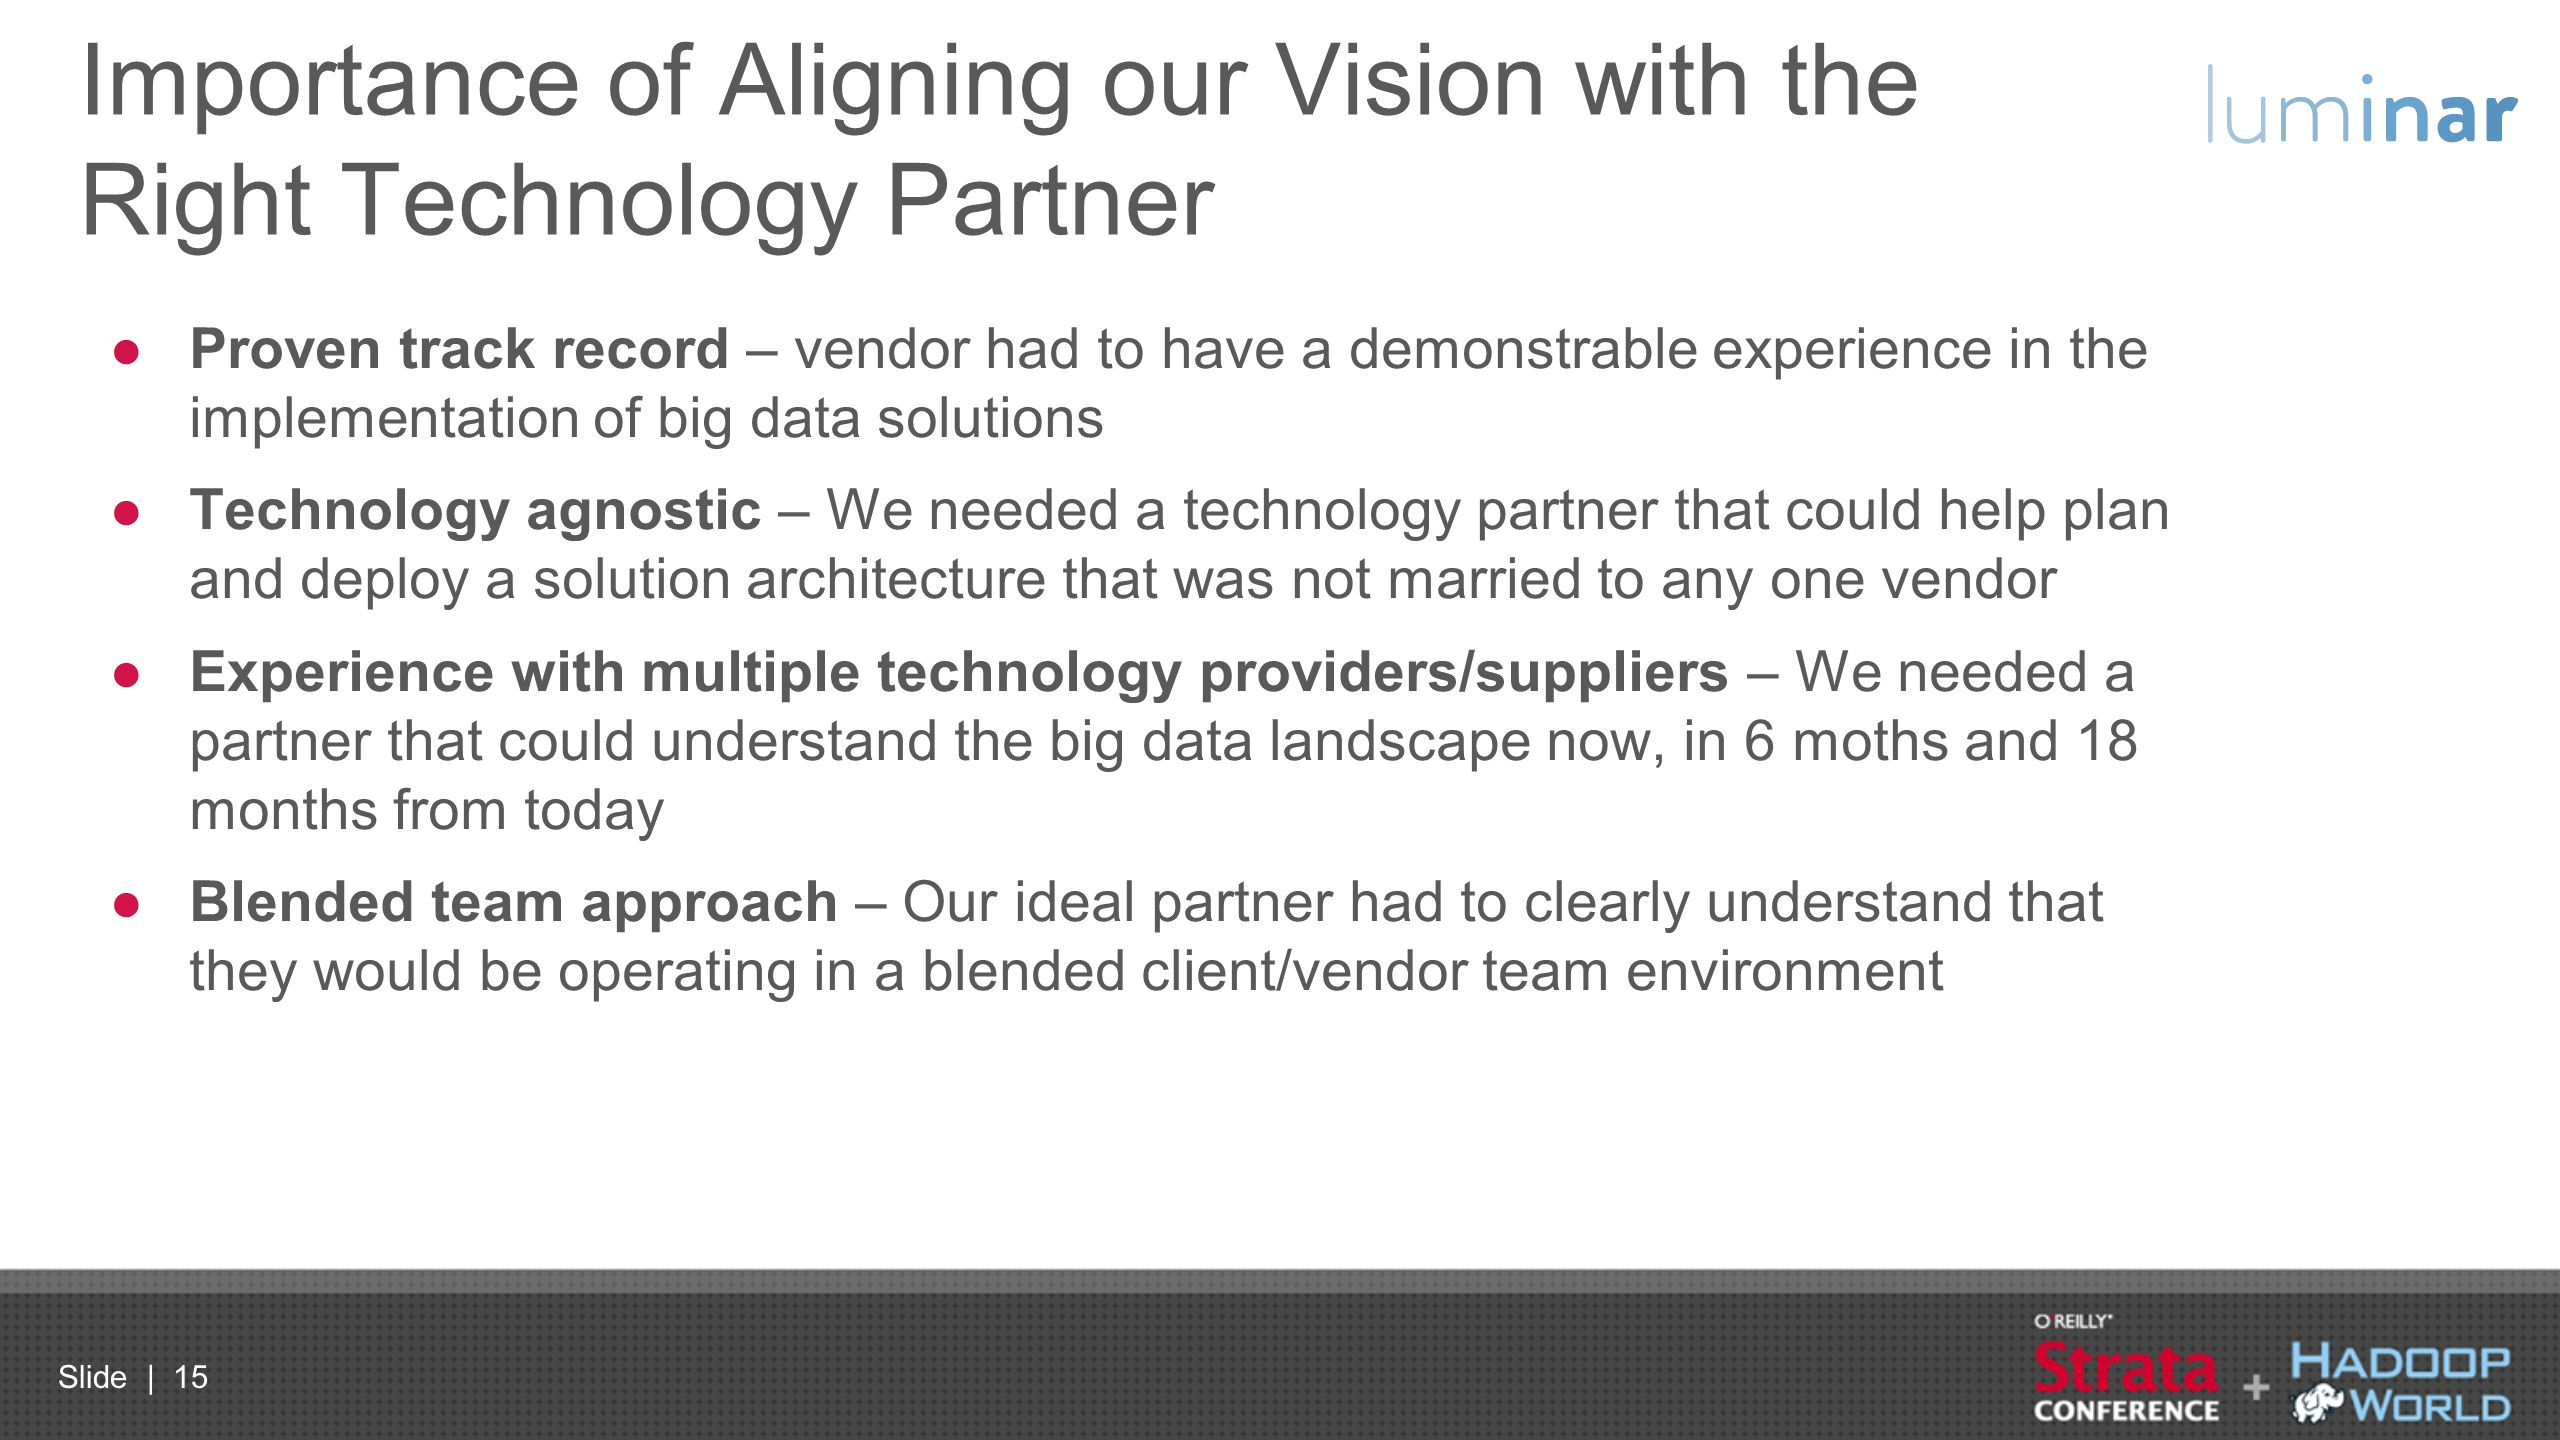 Importance of Aligning our Vision with the Right Technology Partner